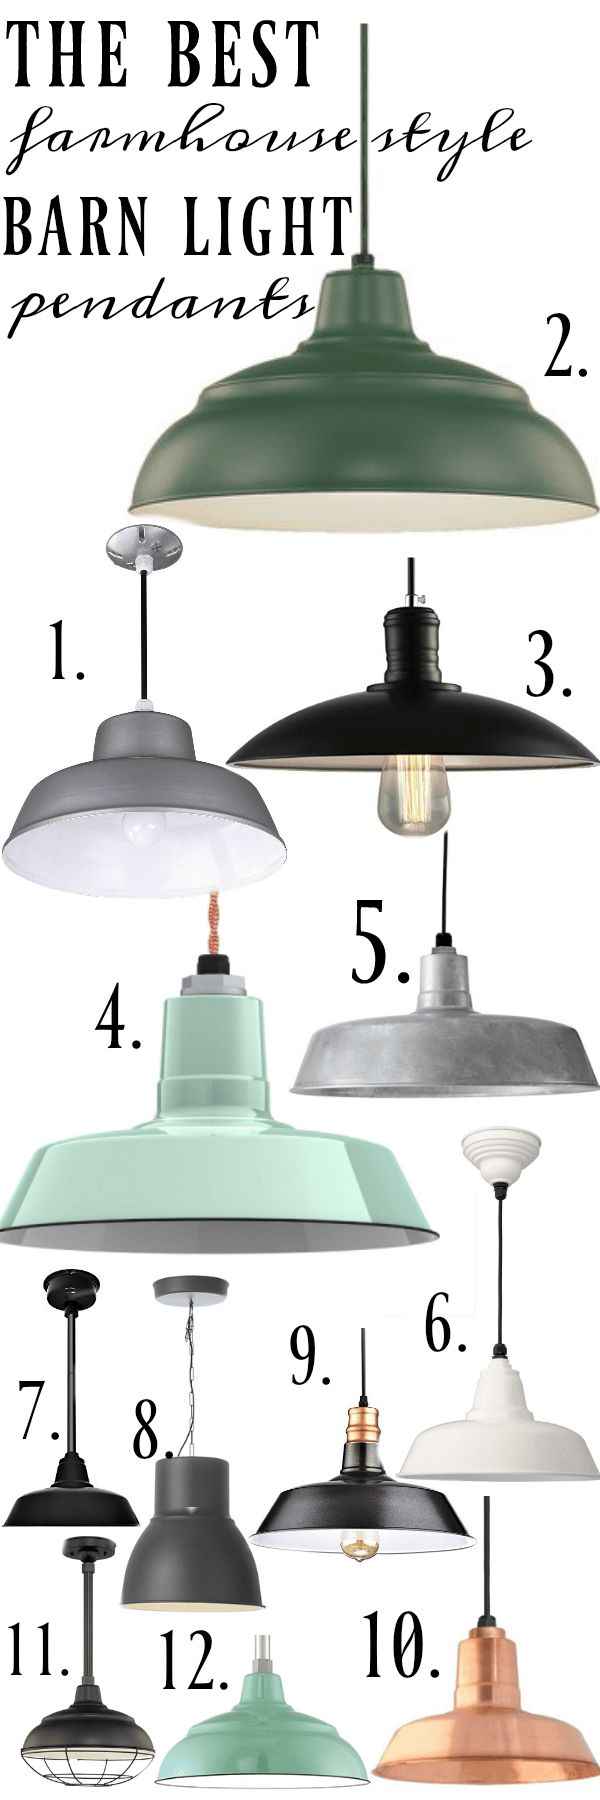 25 Best Ideas about Farmhouse Lighting on Pinterest  Farmhouse